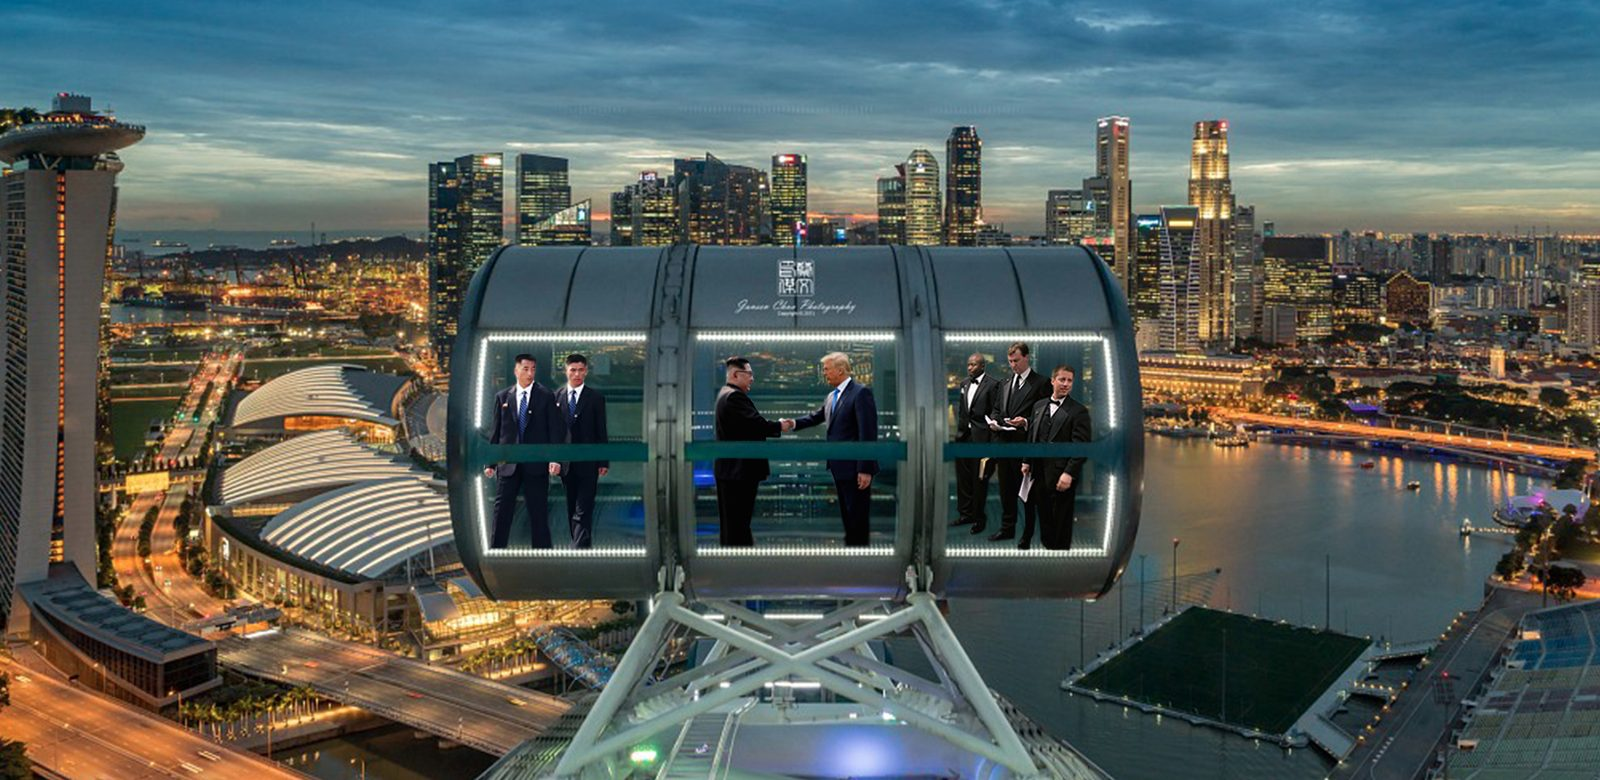 Trump-Kim-summit-venuerific-blog-the-singapore-flyer